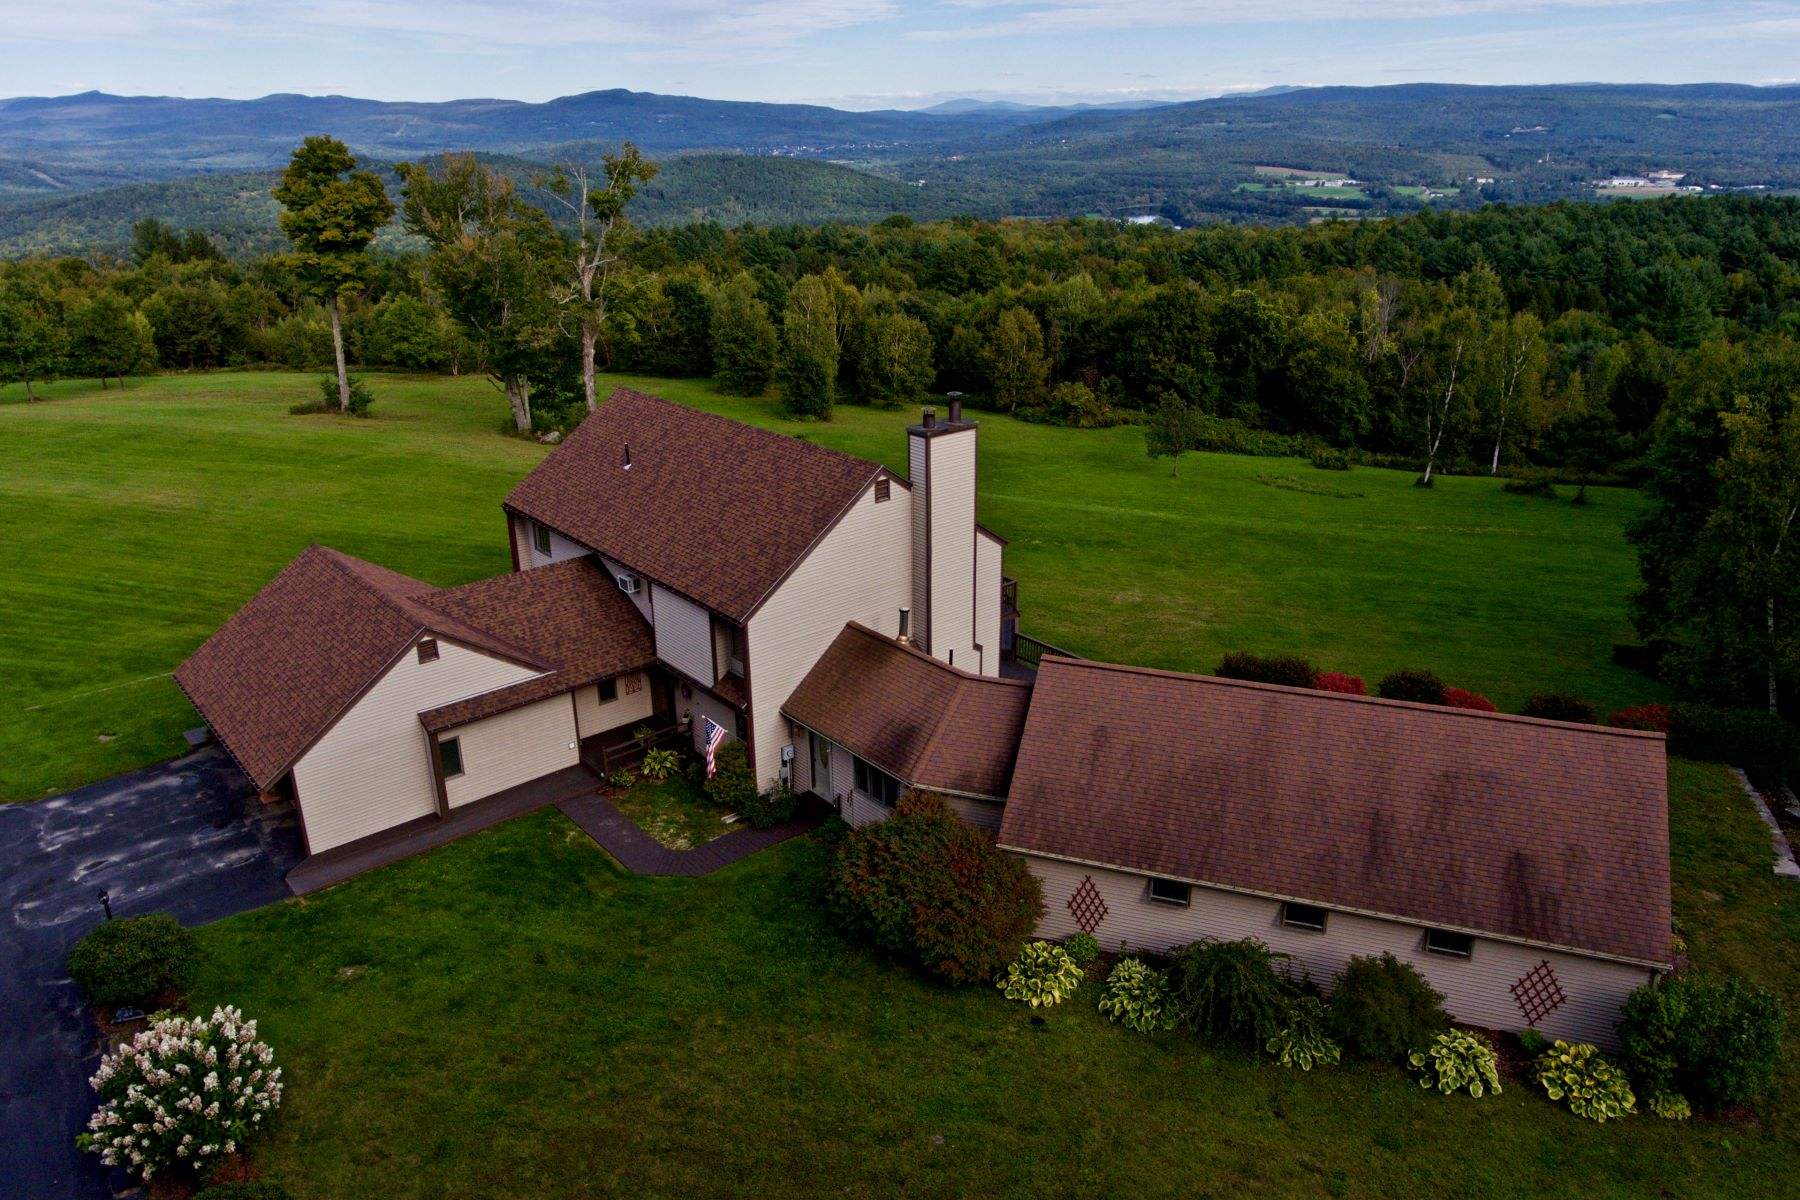 Single Family Homes for Sale at Six Bedroom Contemporary with Year Round Views 403 Divoll Pasture Rd Weathersfield, Vermont 05156 United States